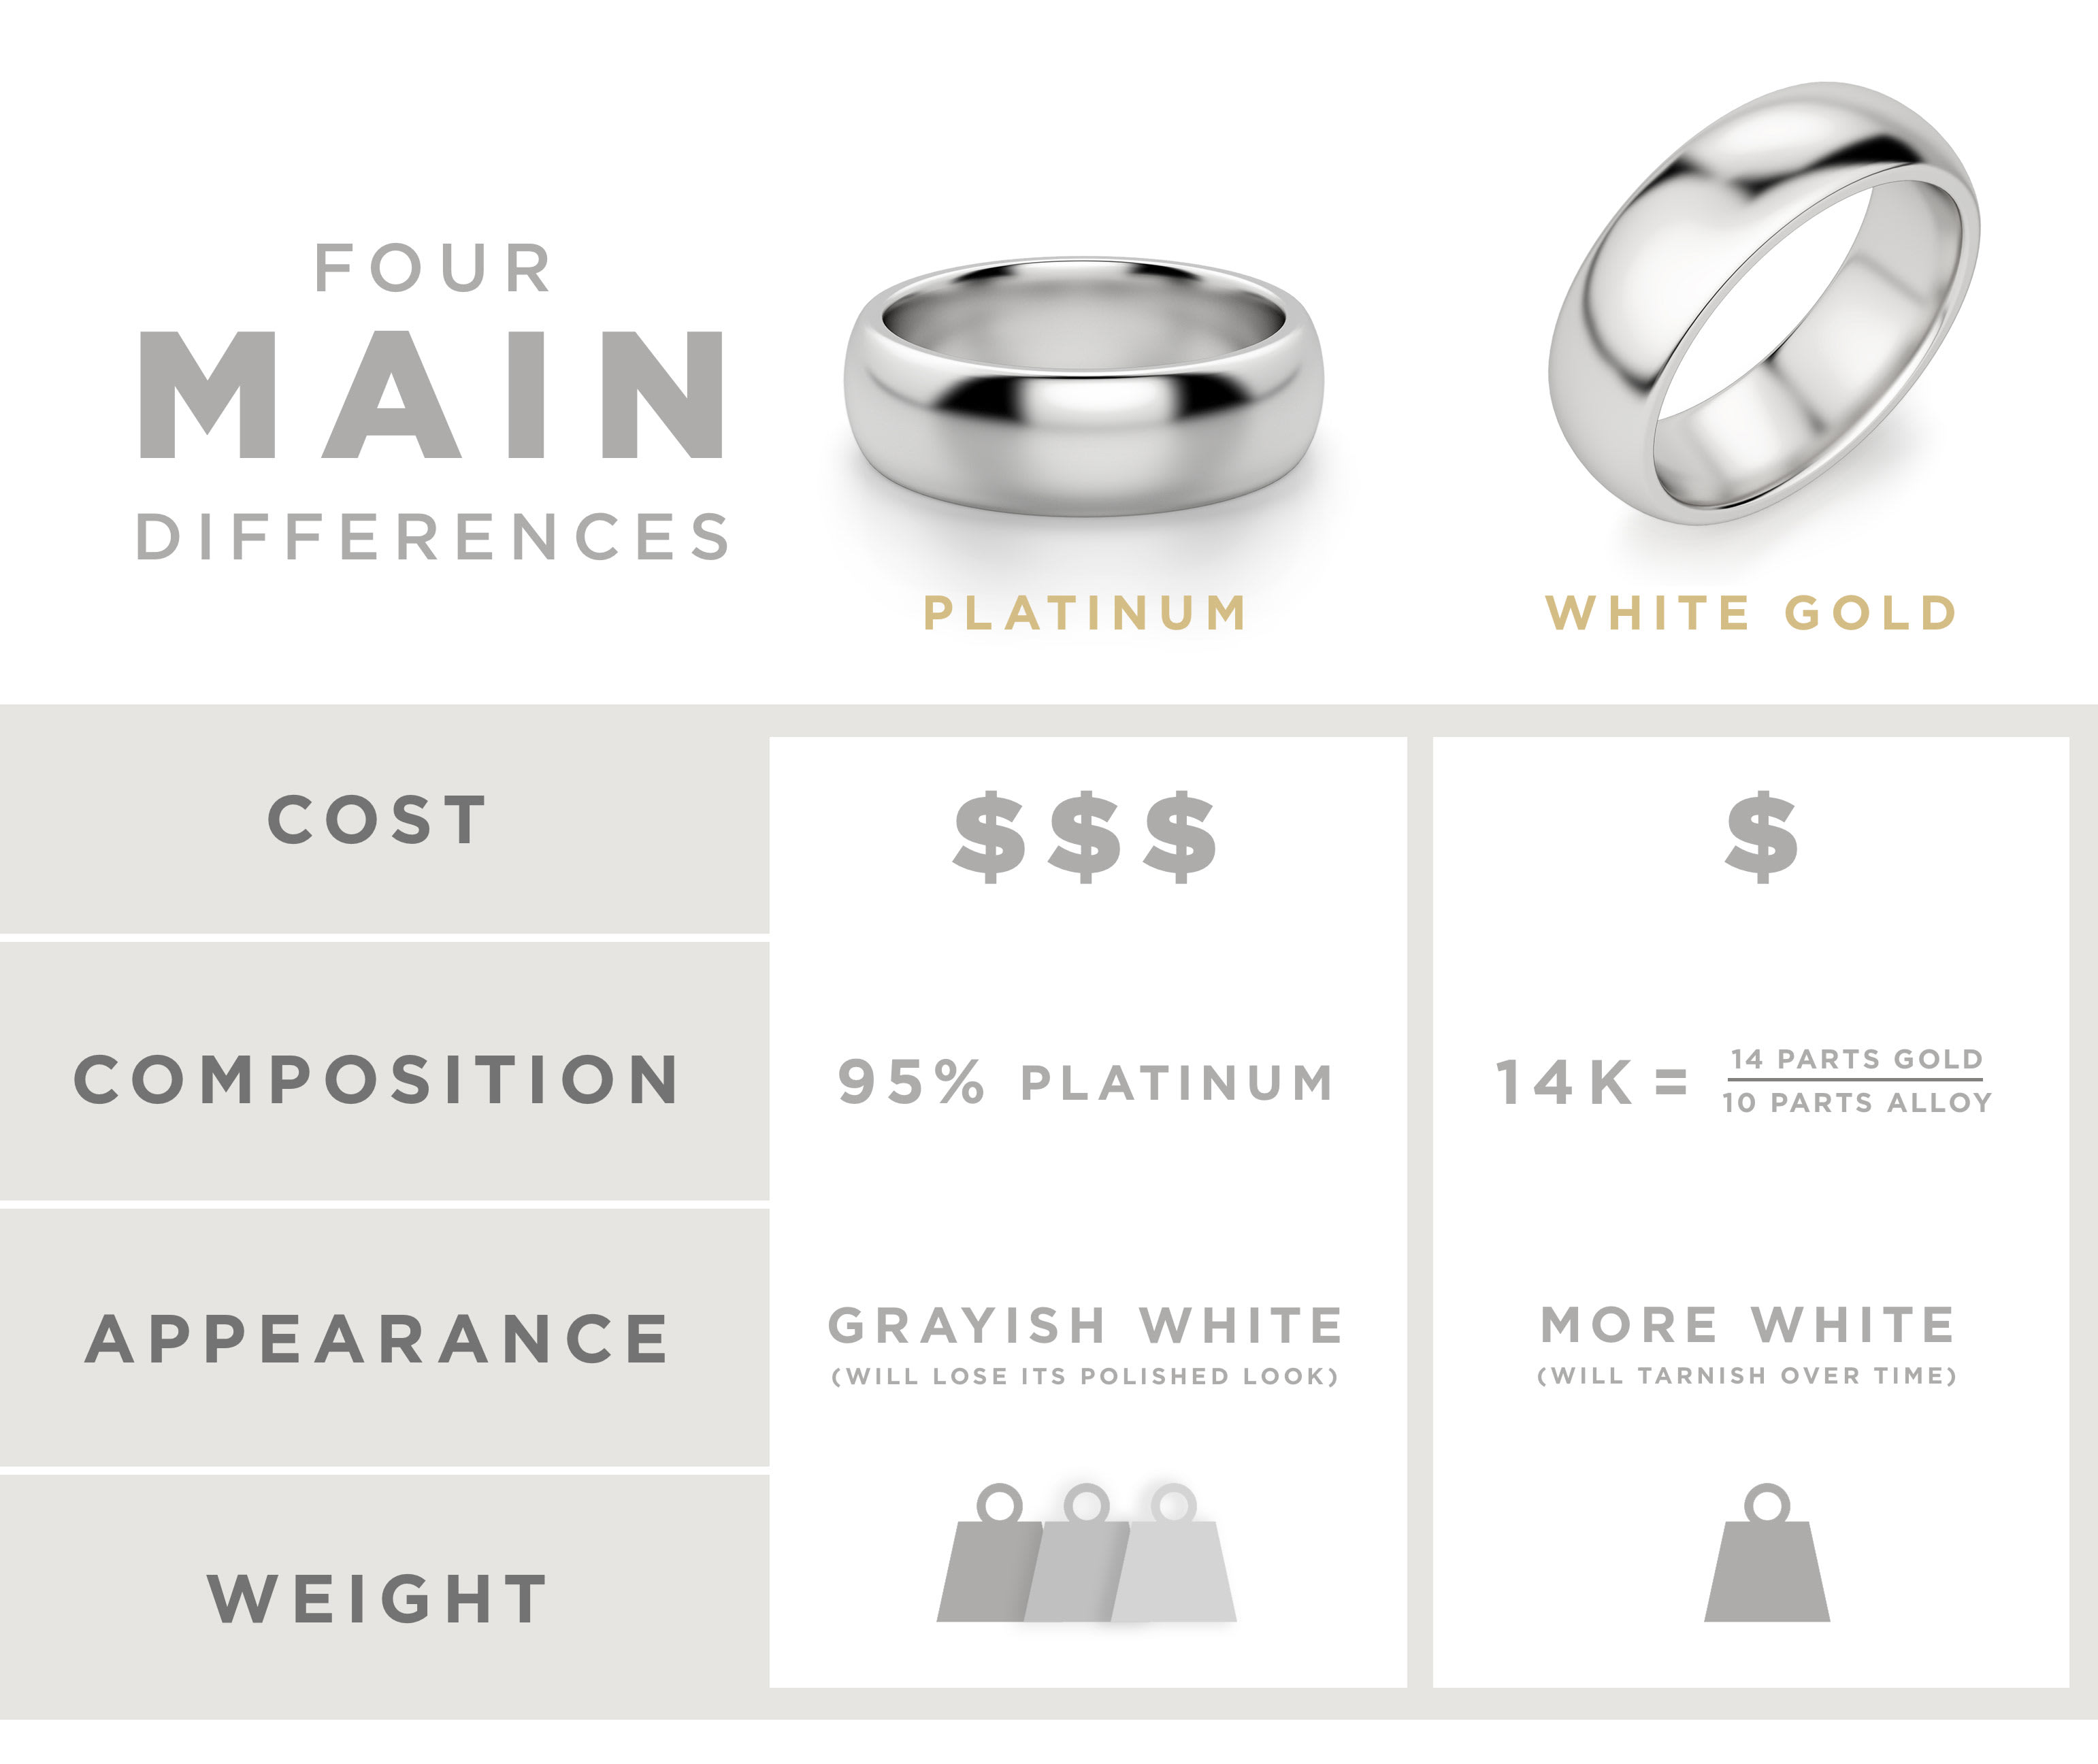 4 main differences between platinum vs white gold